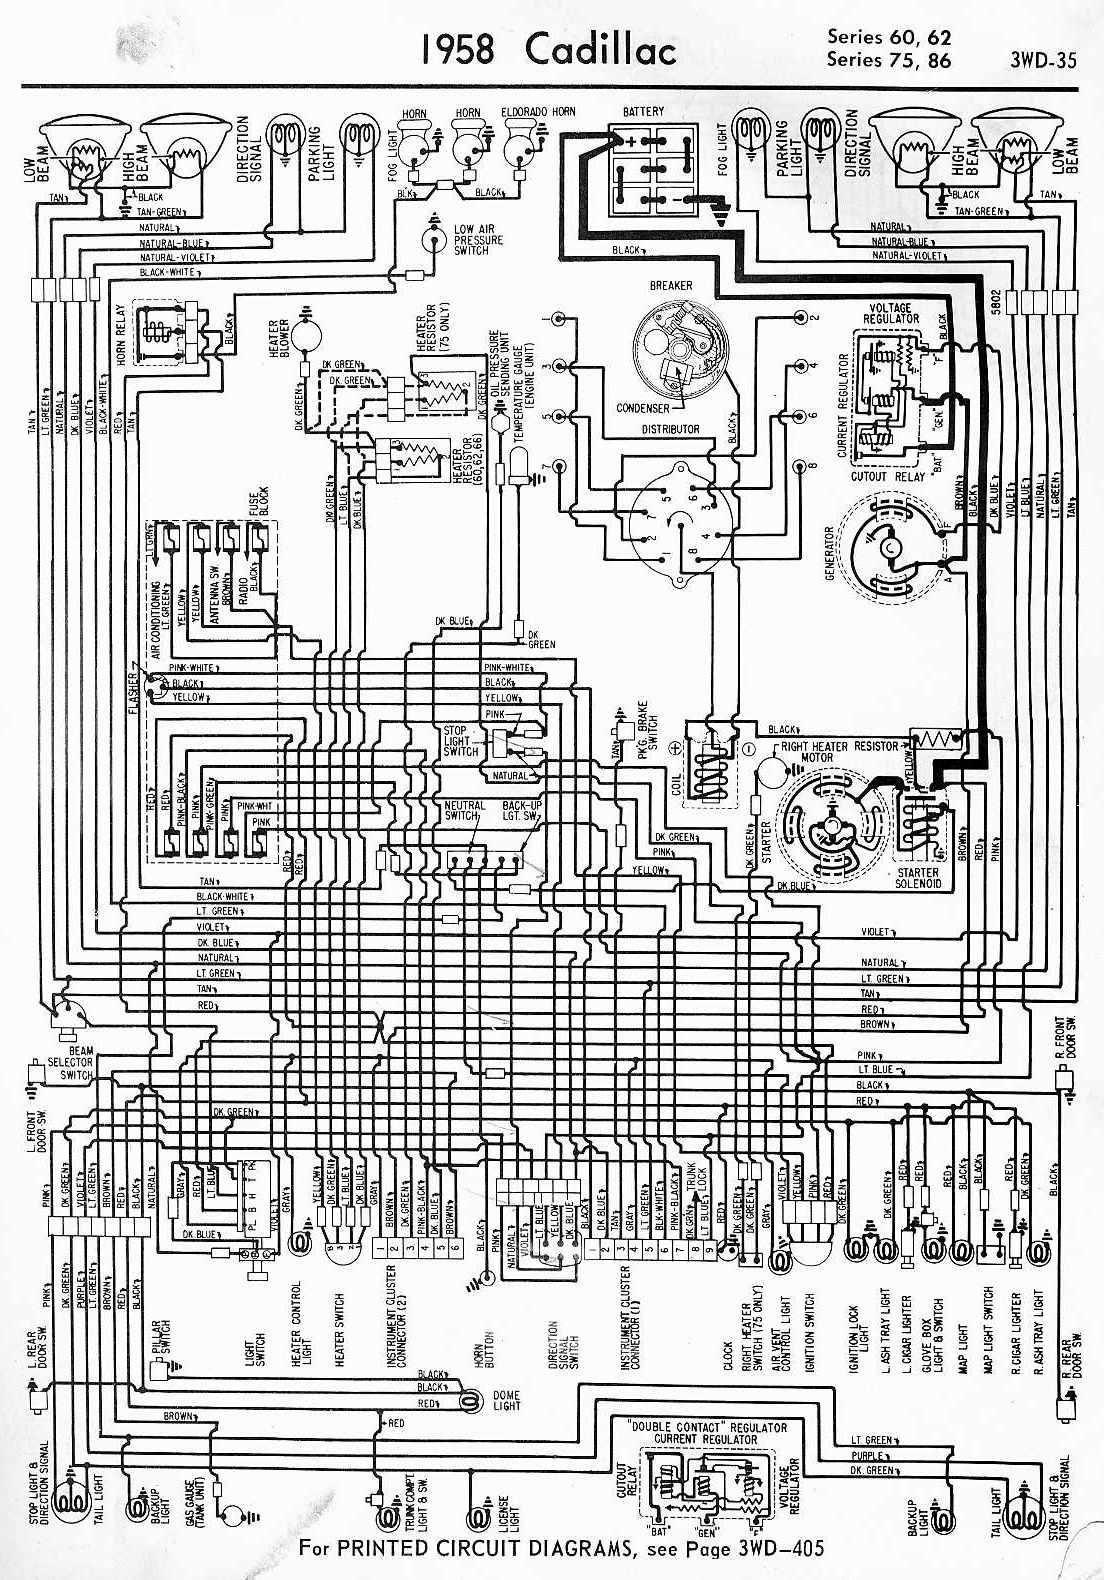 1993 lincoln mark viii radio wiring diagram 1993 ford f150 2000 lincoln navigator engine diagram lincoln [ 1104 x 1580 Pixel ]